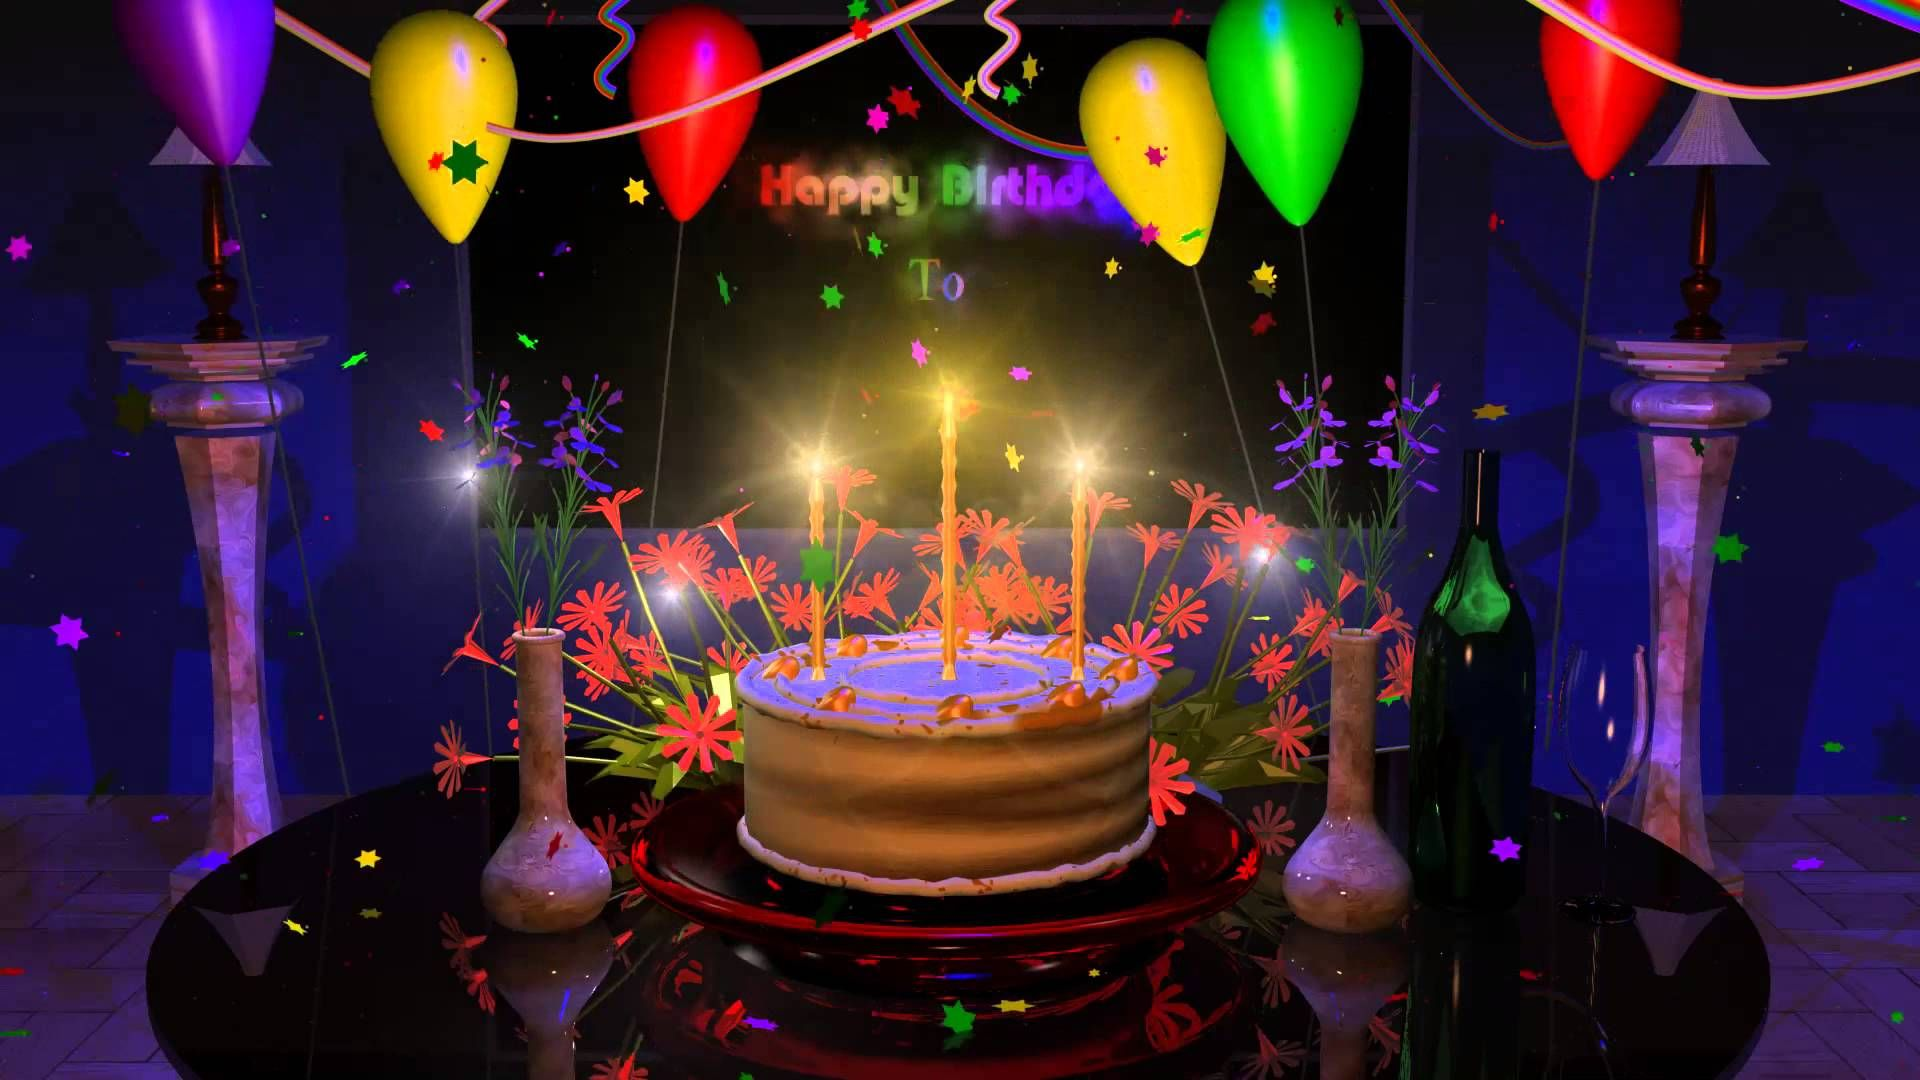 Magical Cake Animated Happy Birthday Song Birthday